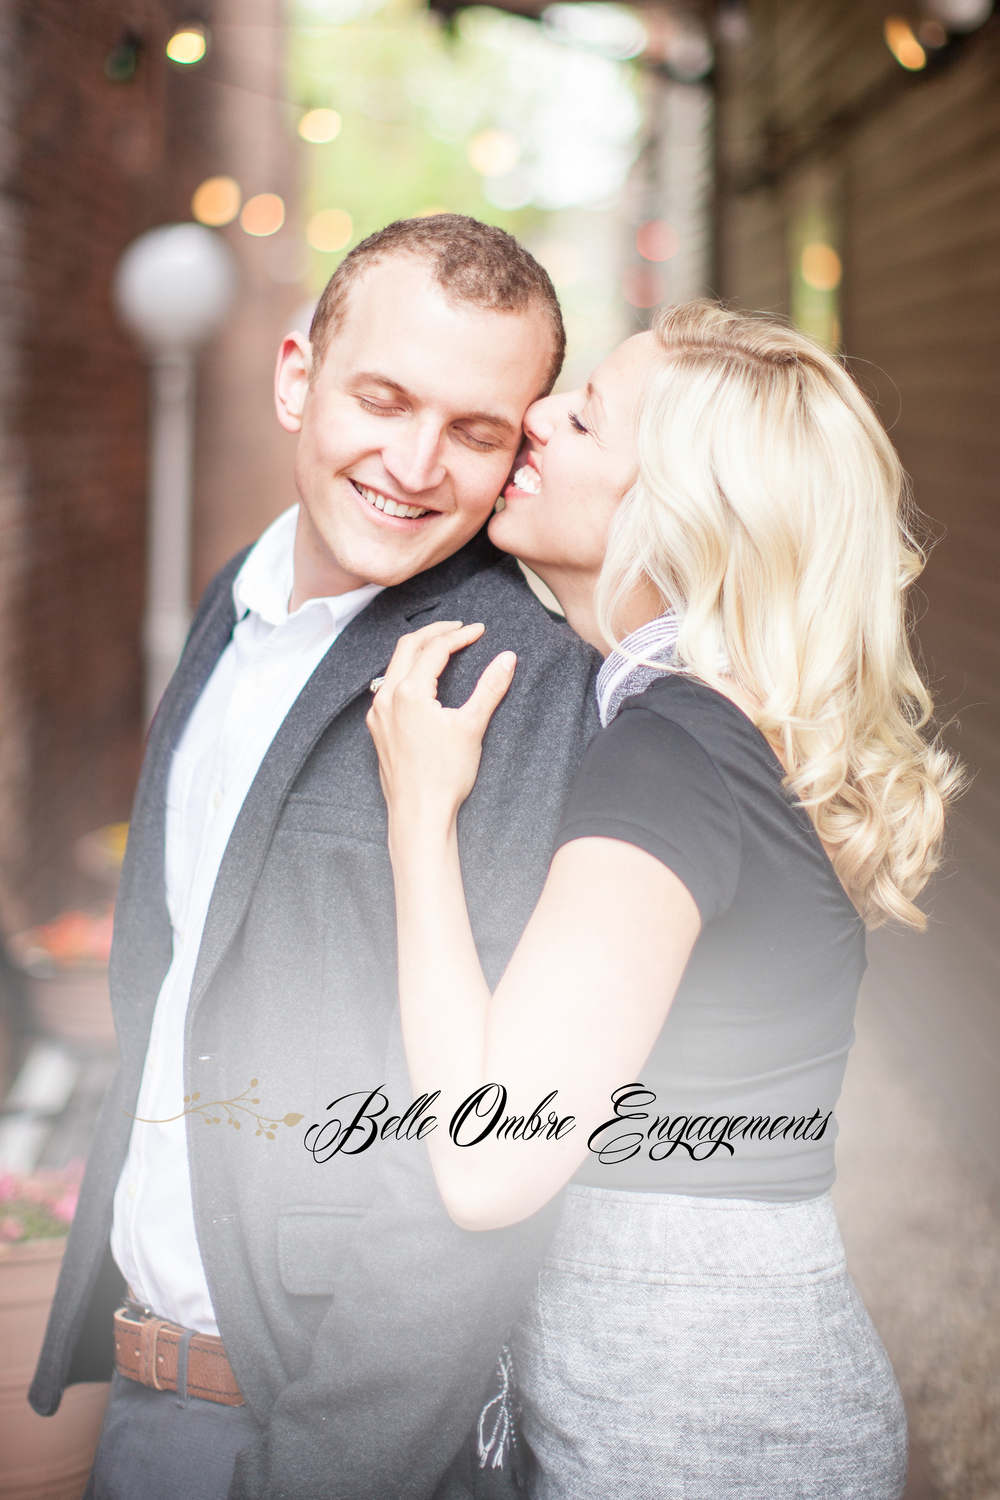 Belle Ombre Engagements